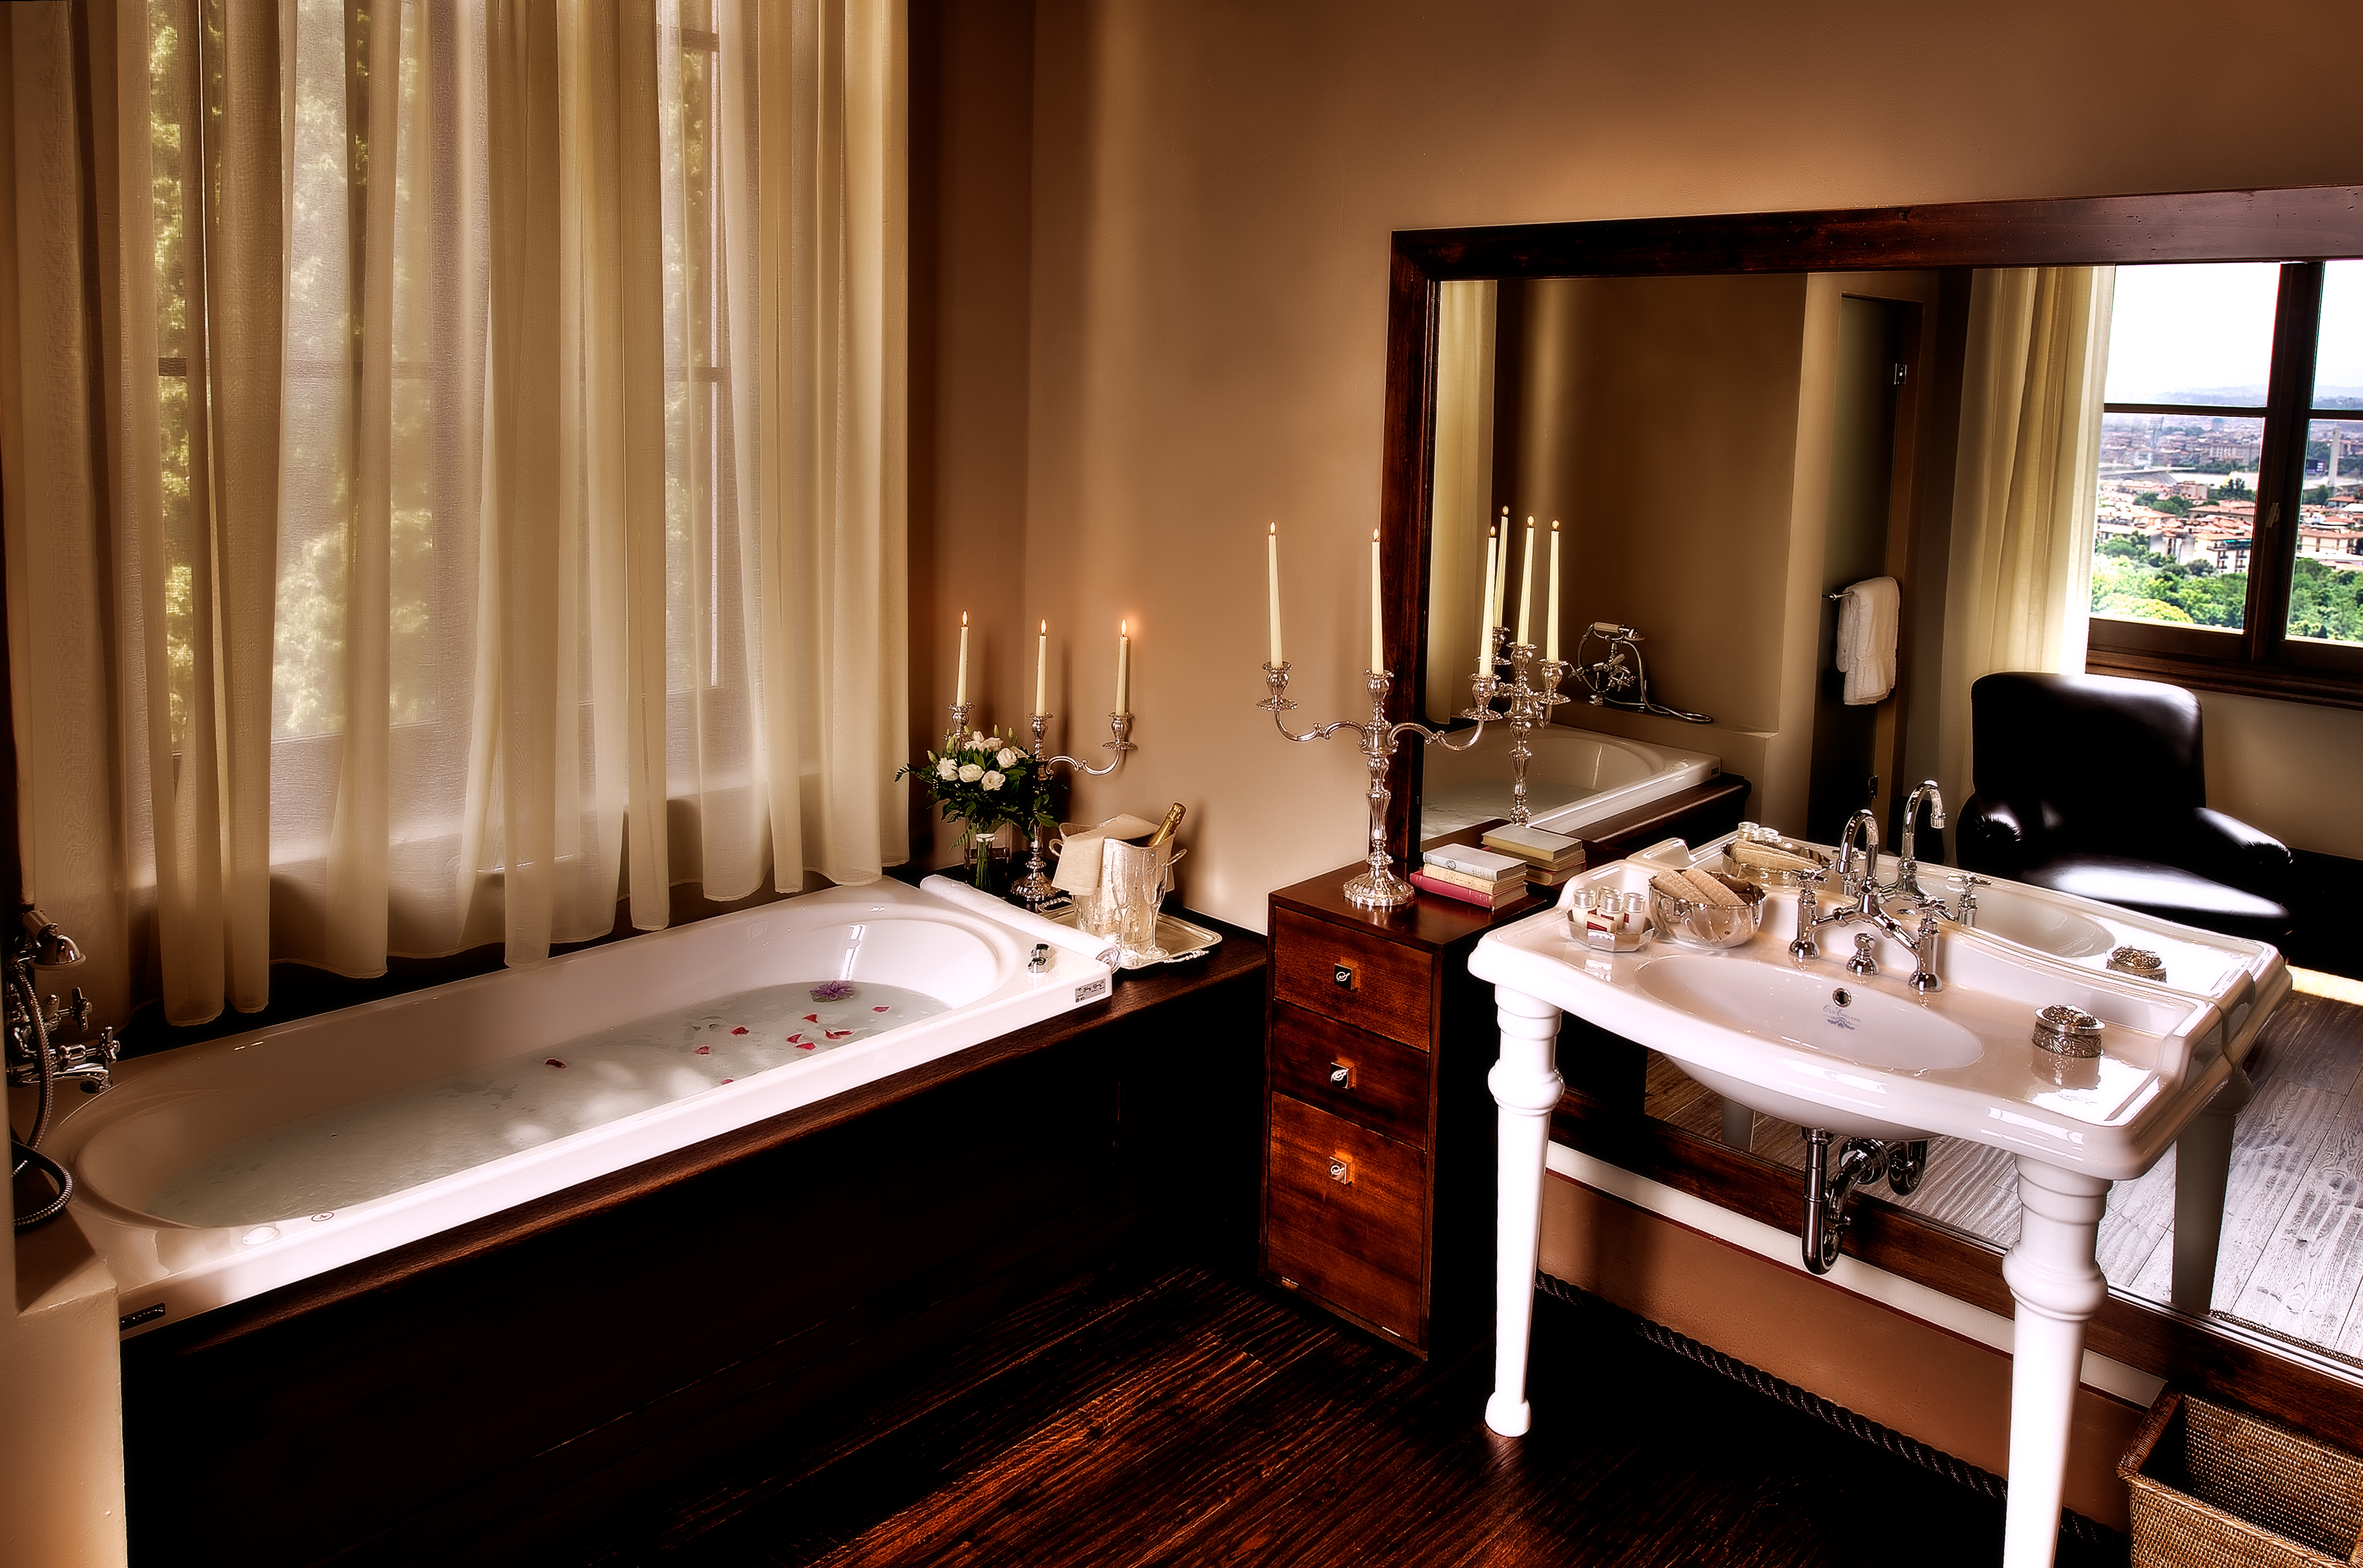 Bathroom, Salviatino Hotel - Fiesole - Florence – Italy